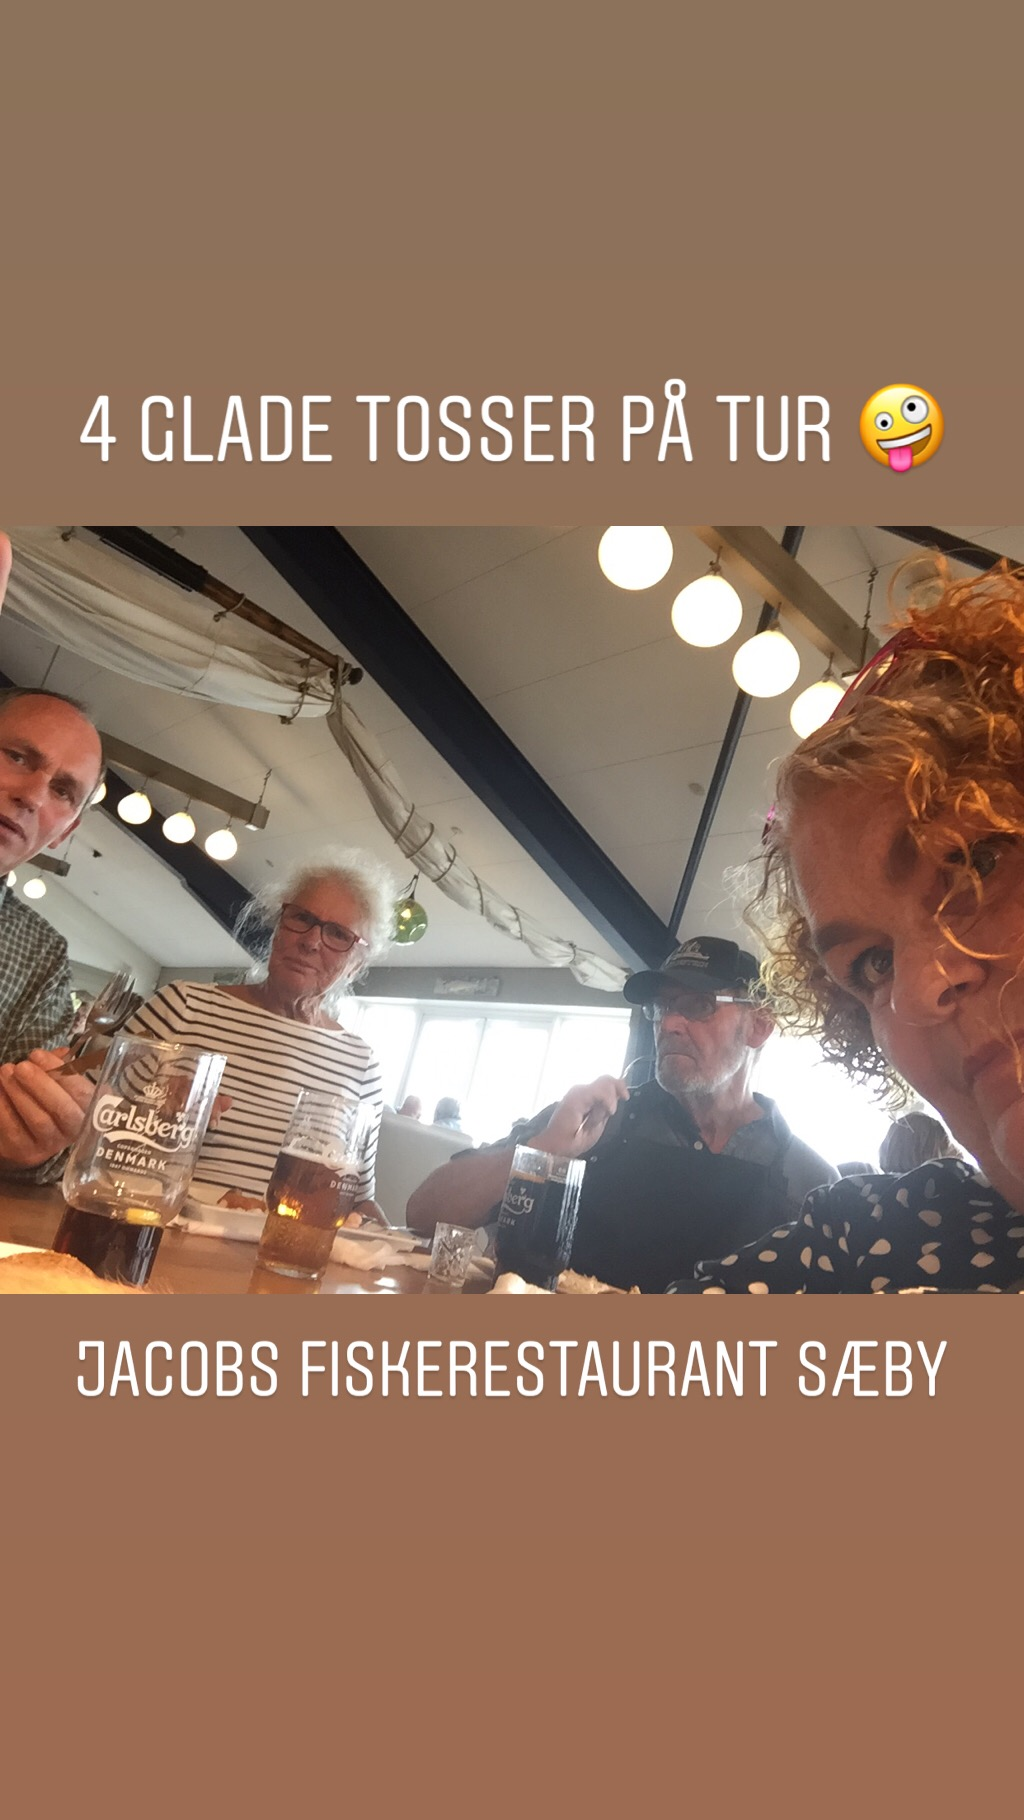 jacobs-fiskerestaurant-2019_47984912551_o